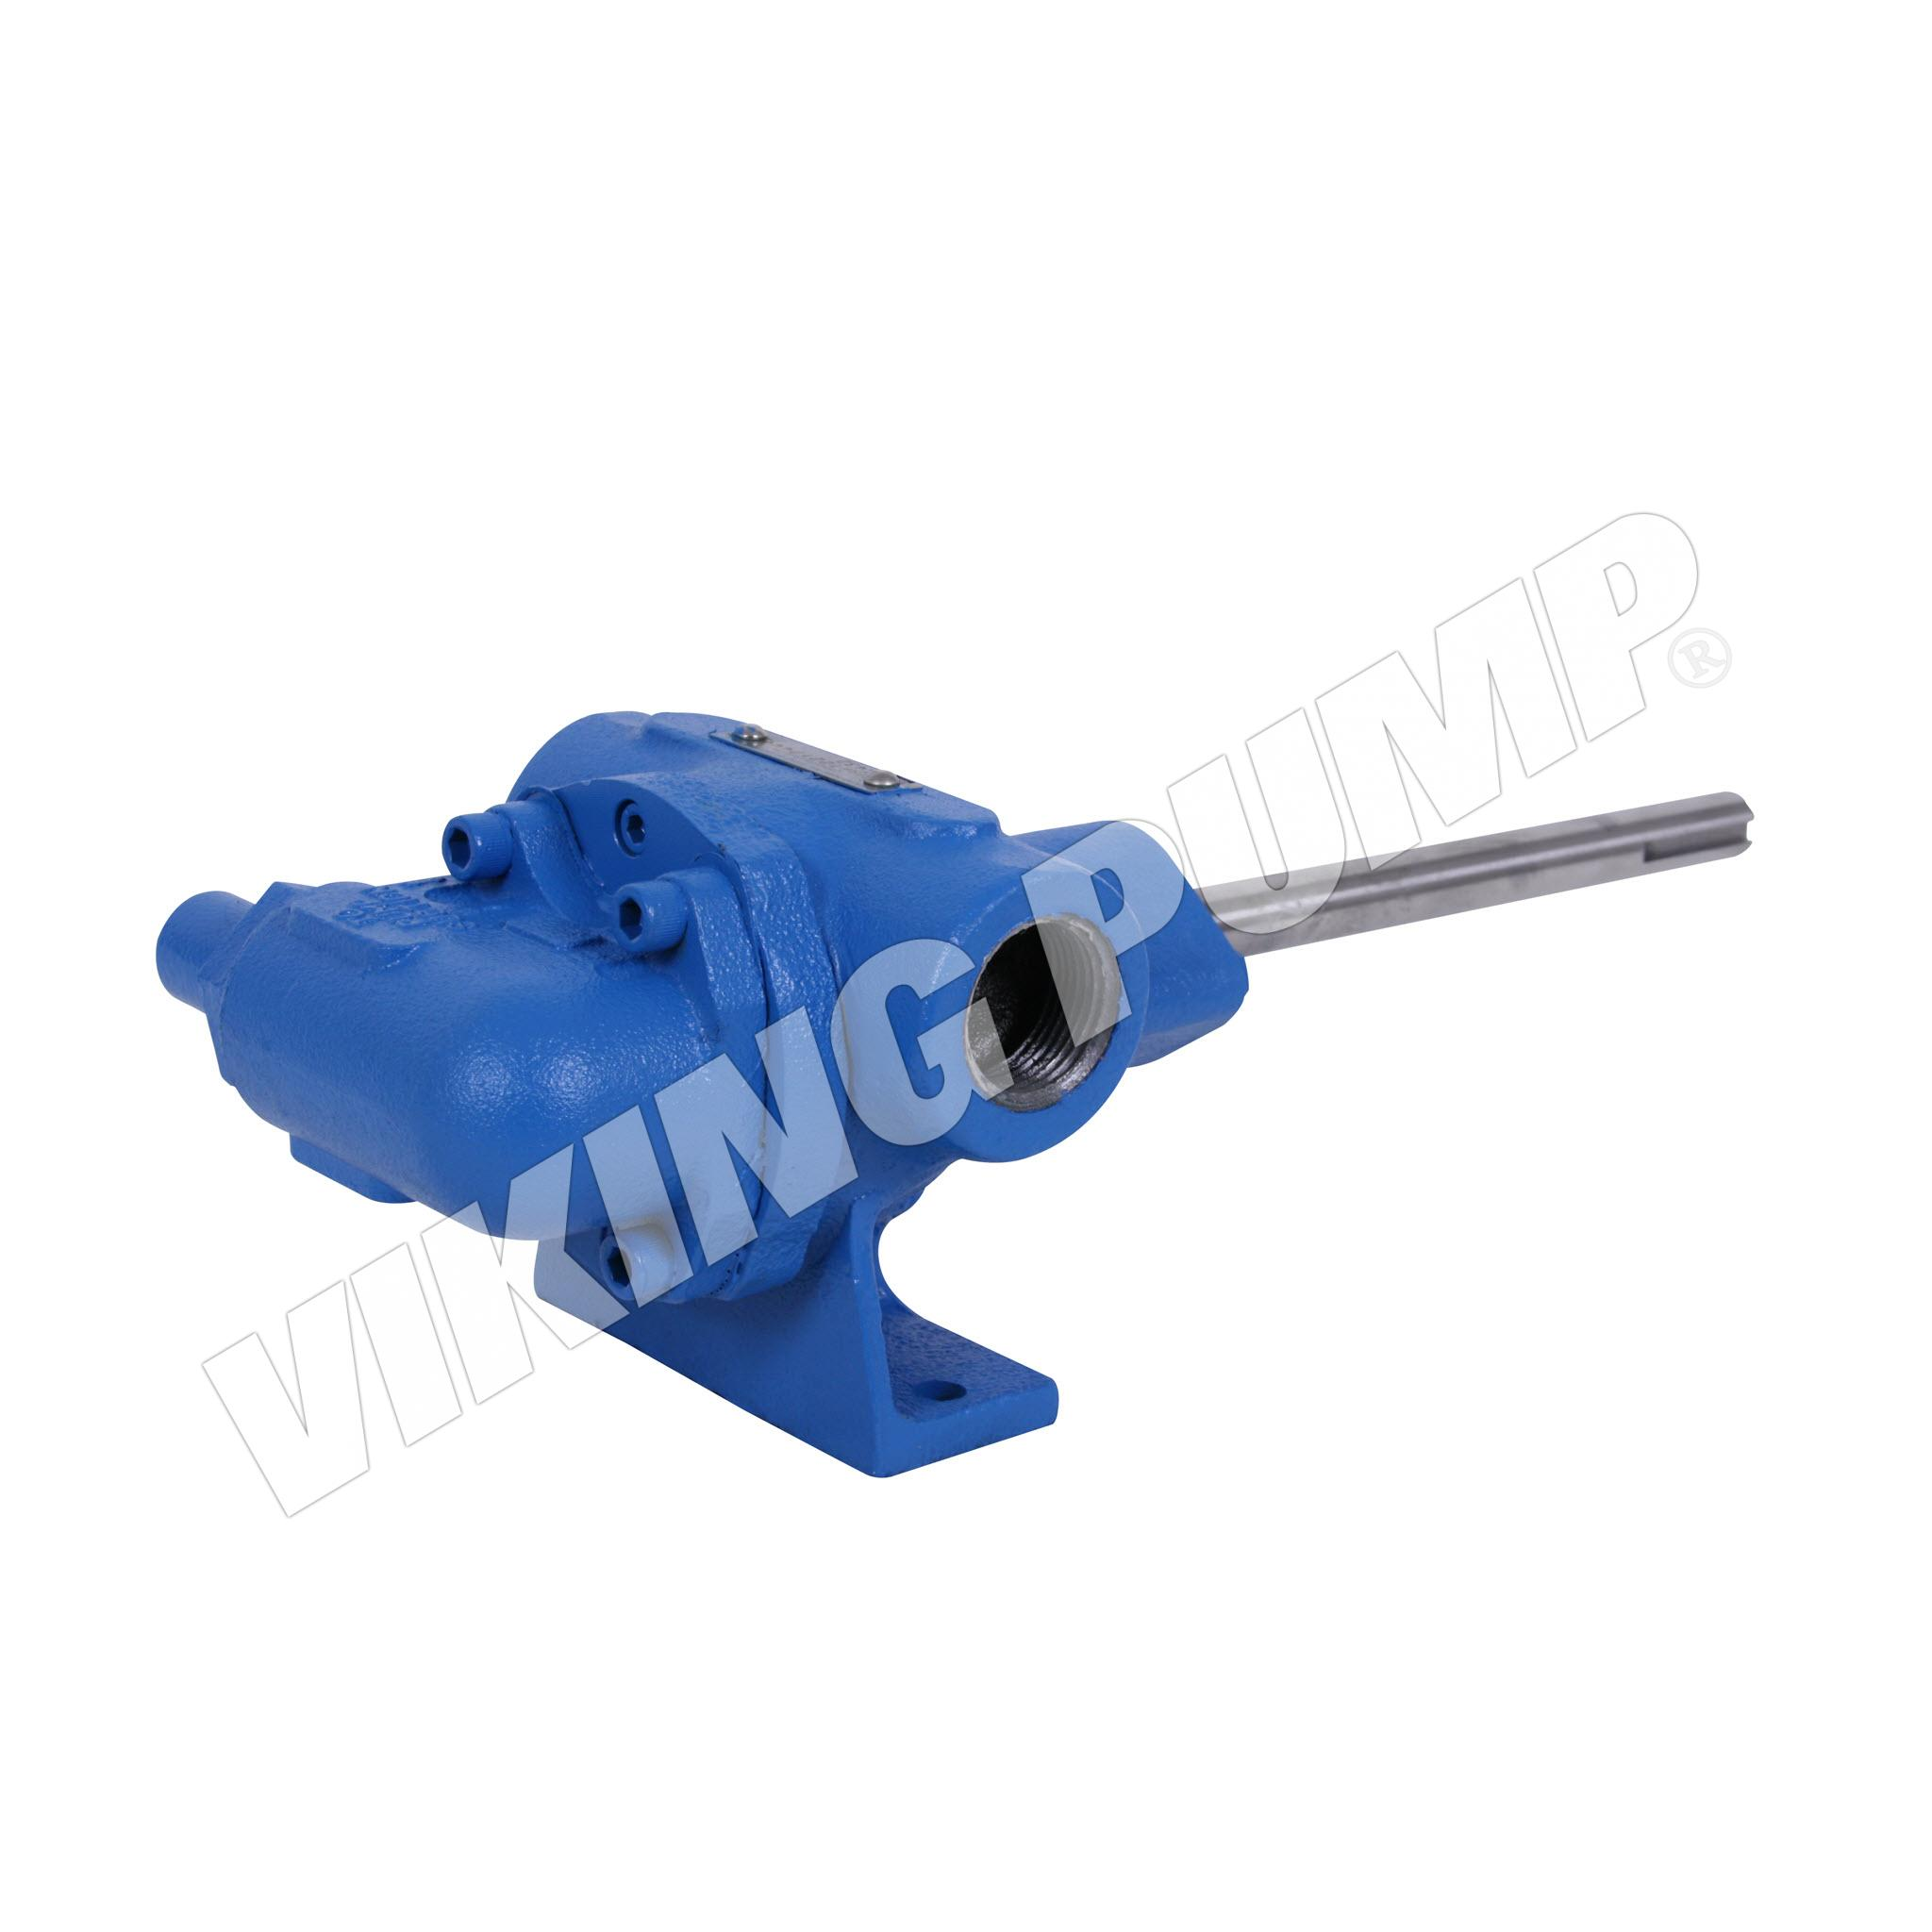 Model G432-X, Foot Mounted, Mechanical Seal, Relief Valve Pump